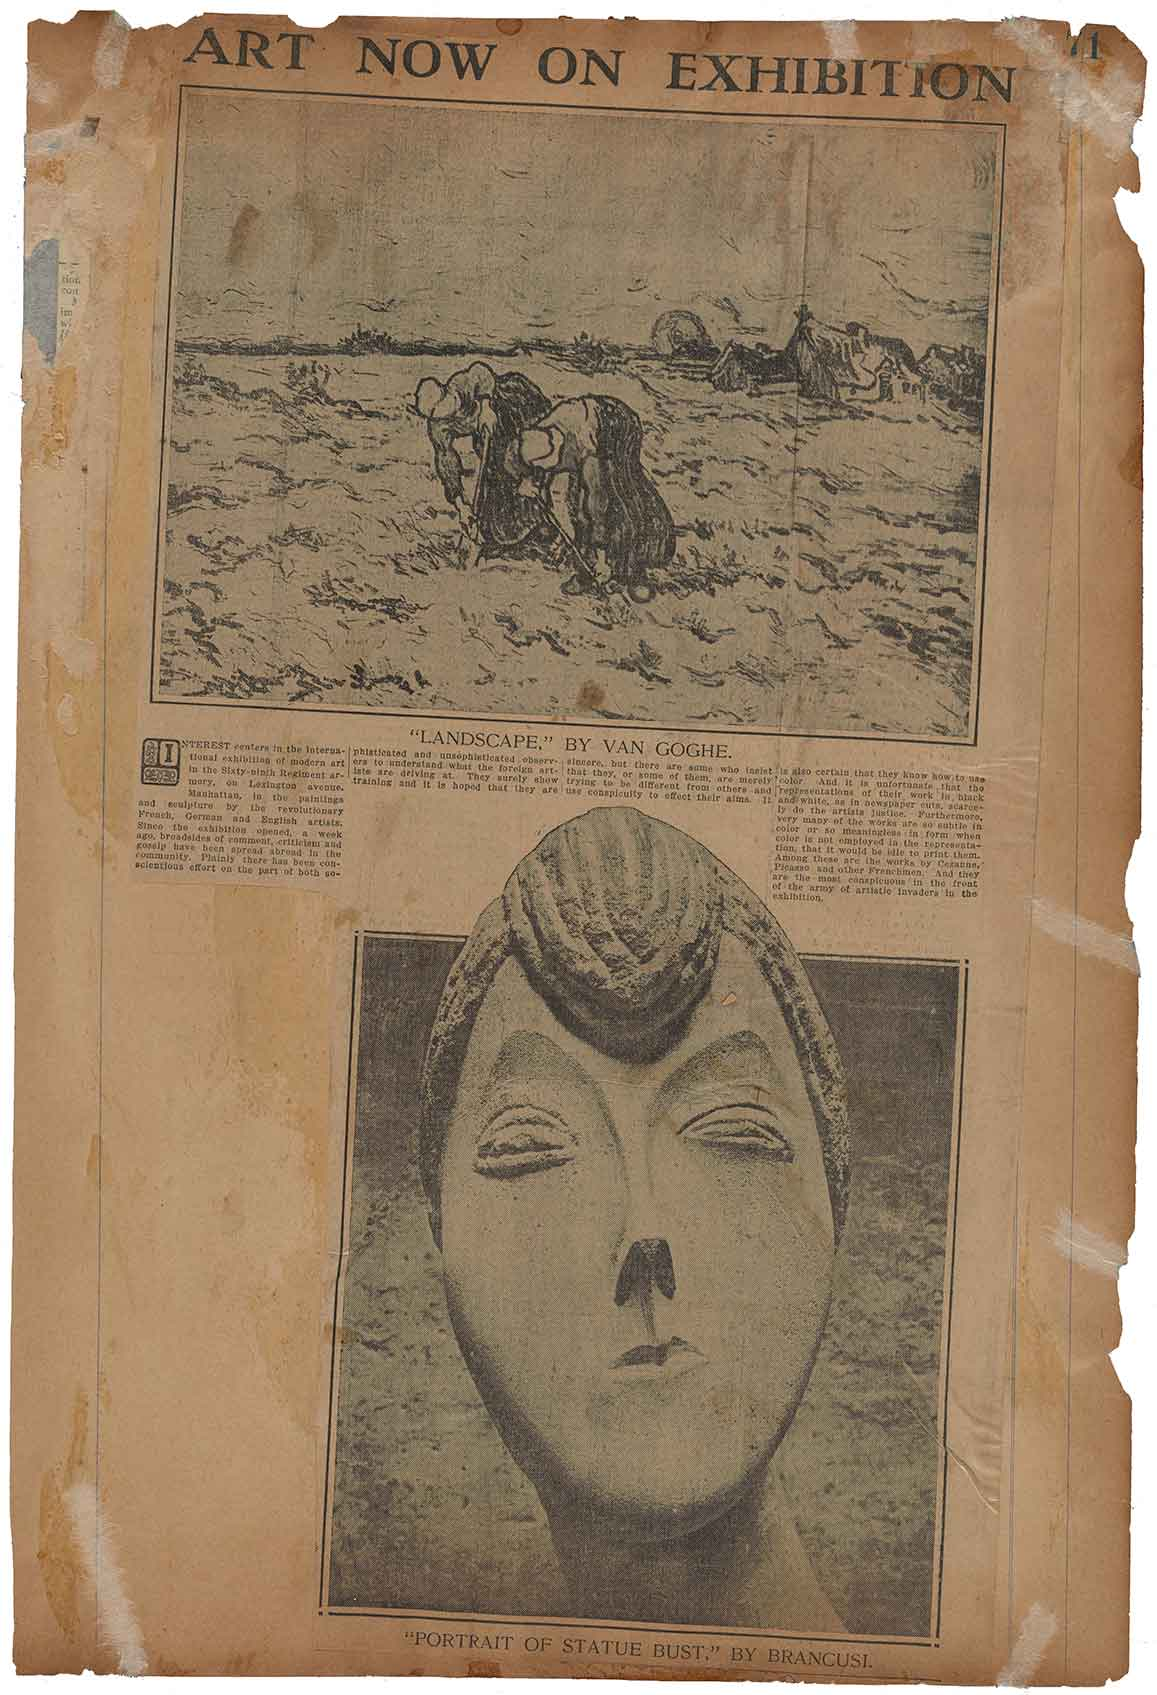 Scrapbook of Armory Show press clippings, page 71